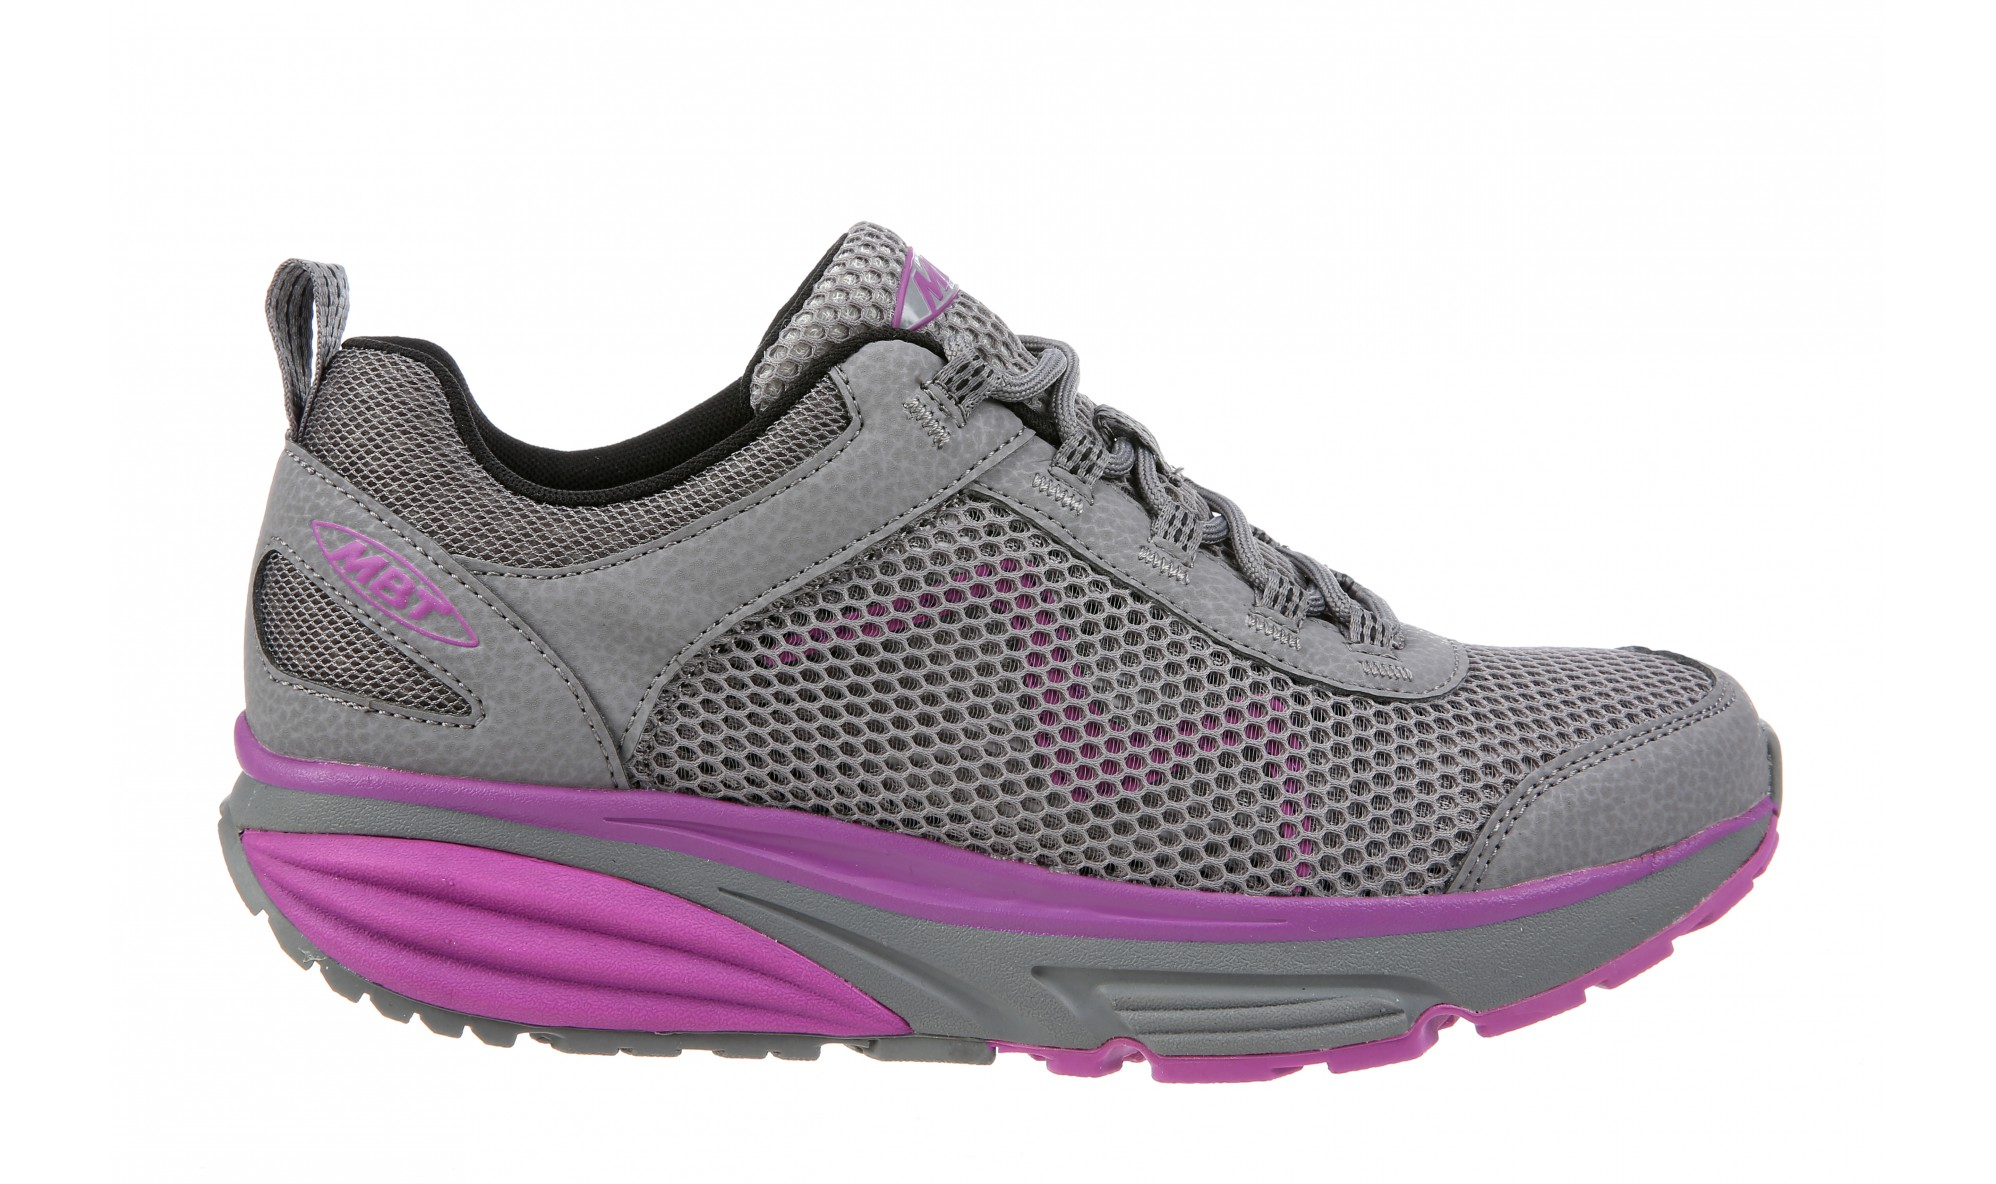 MBT Colorado 17 - Women's - Grey/Purple